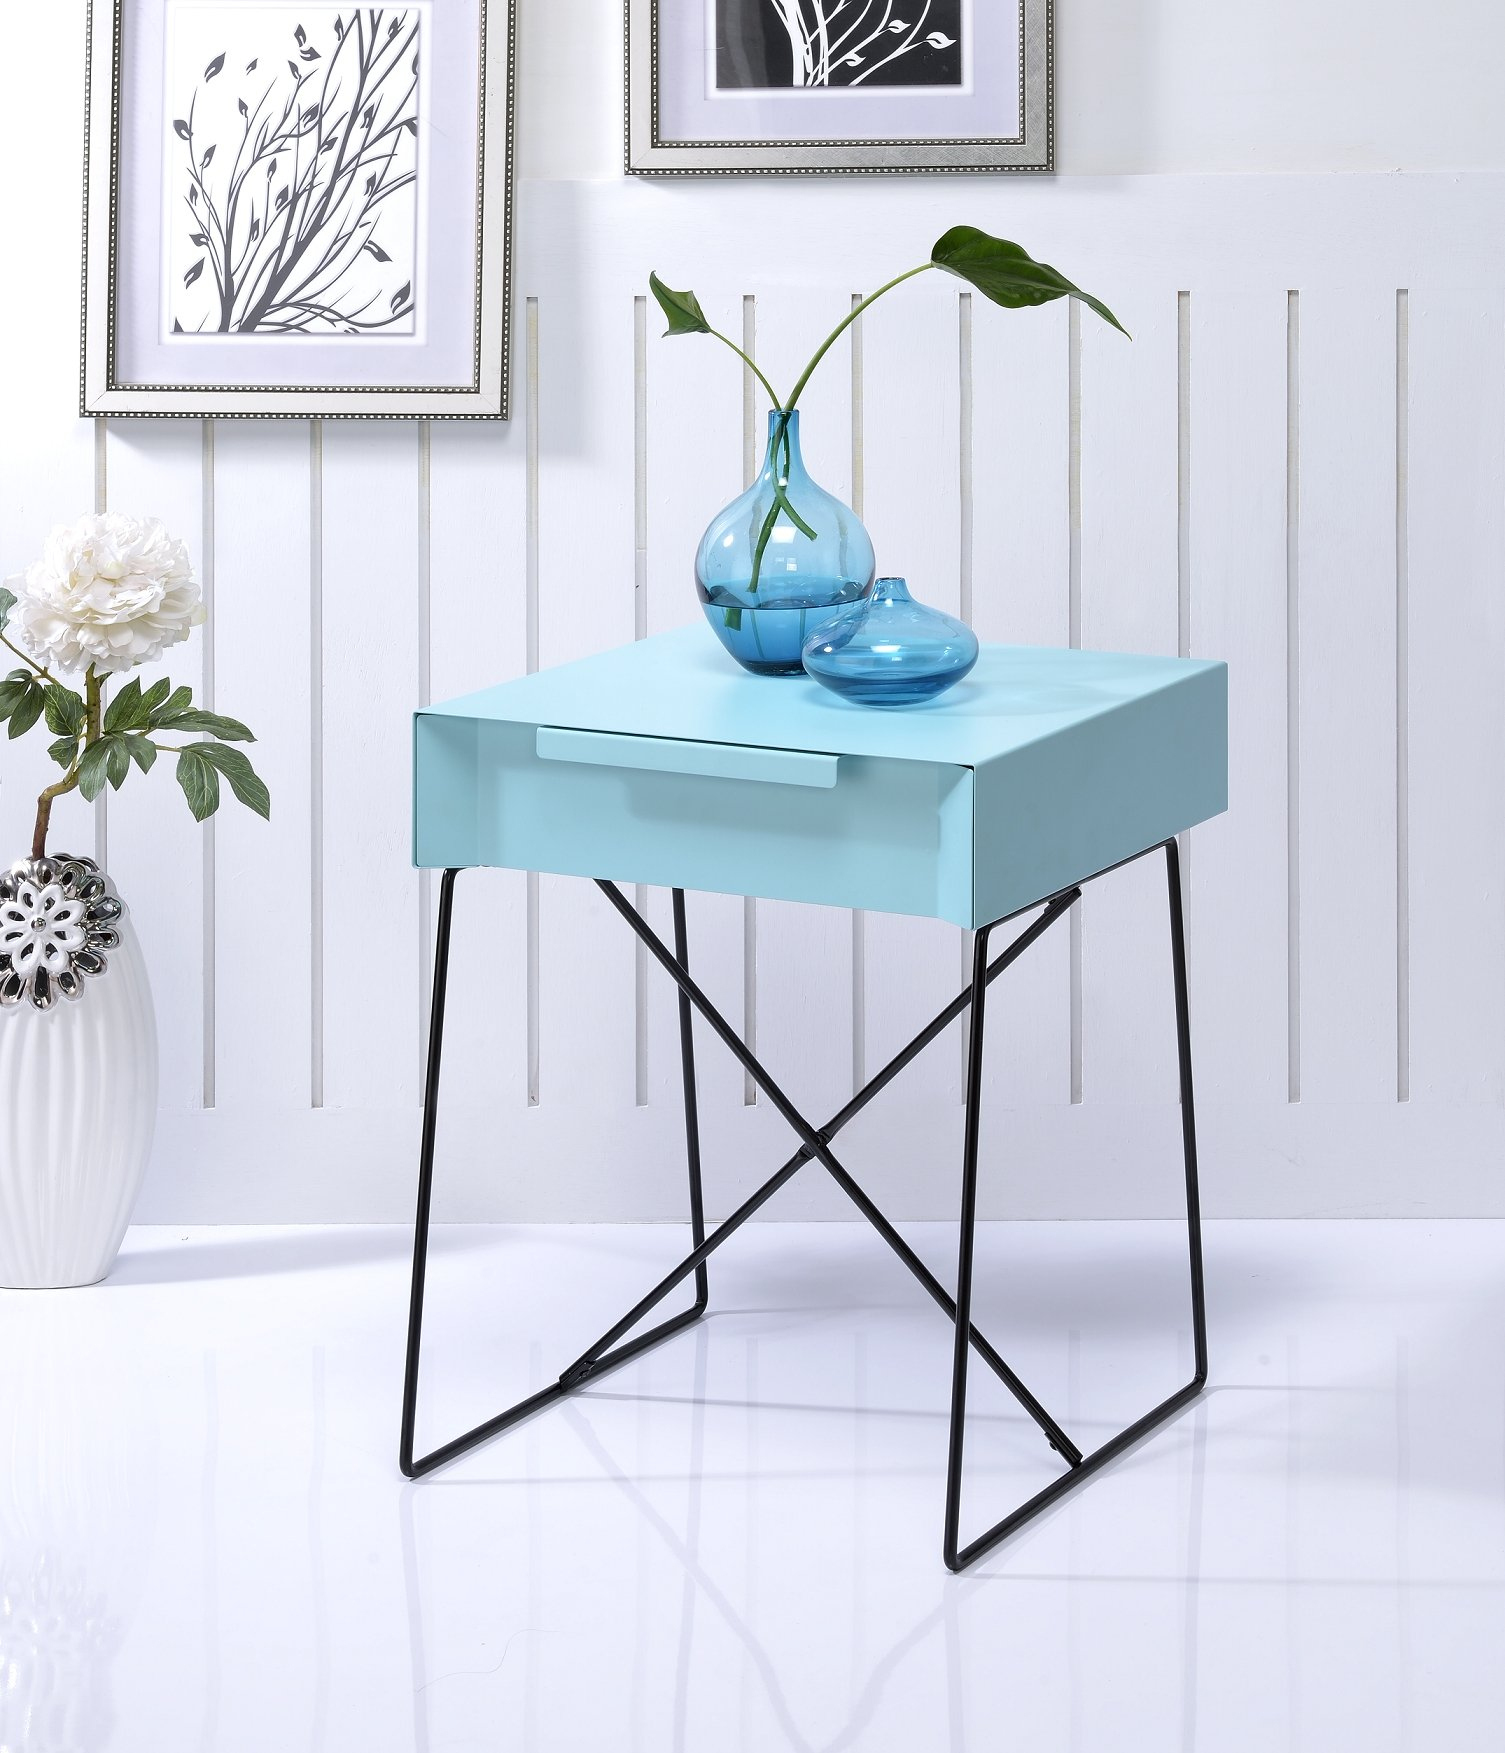 acme gualacao end table light blue flatfair load into gallery viewer furniture row kids beds vintage modern tables lexington mahogany fire pit dining set tiered glass elephant leg